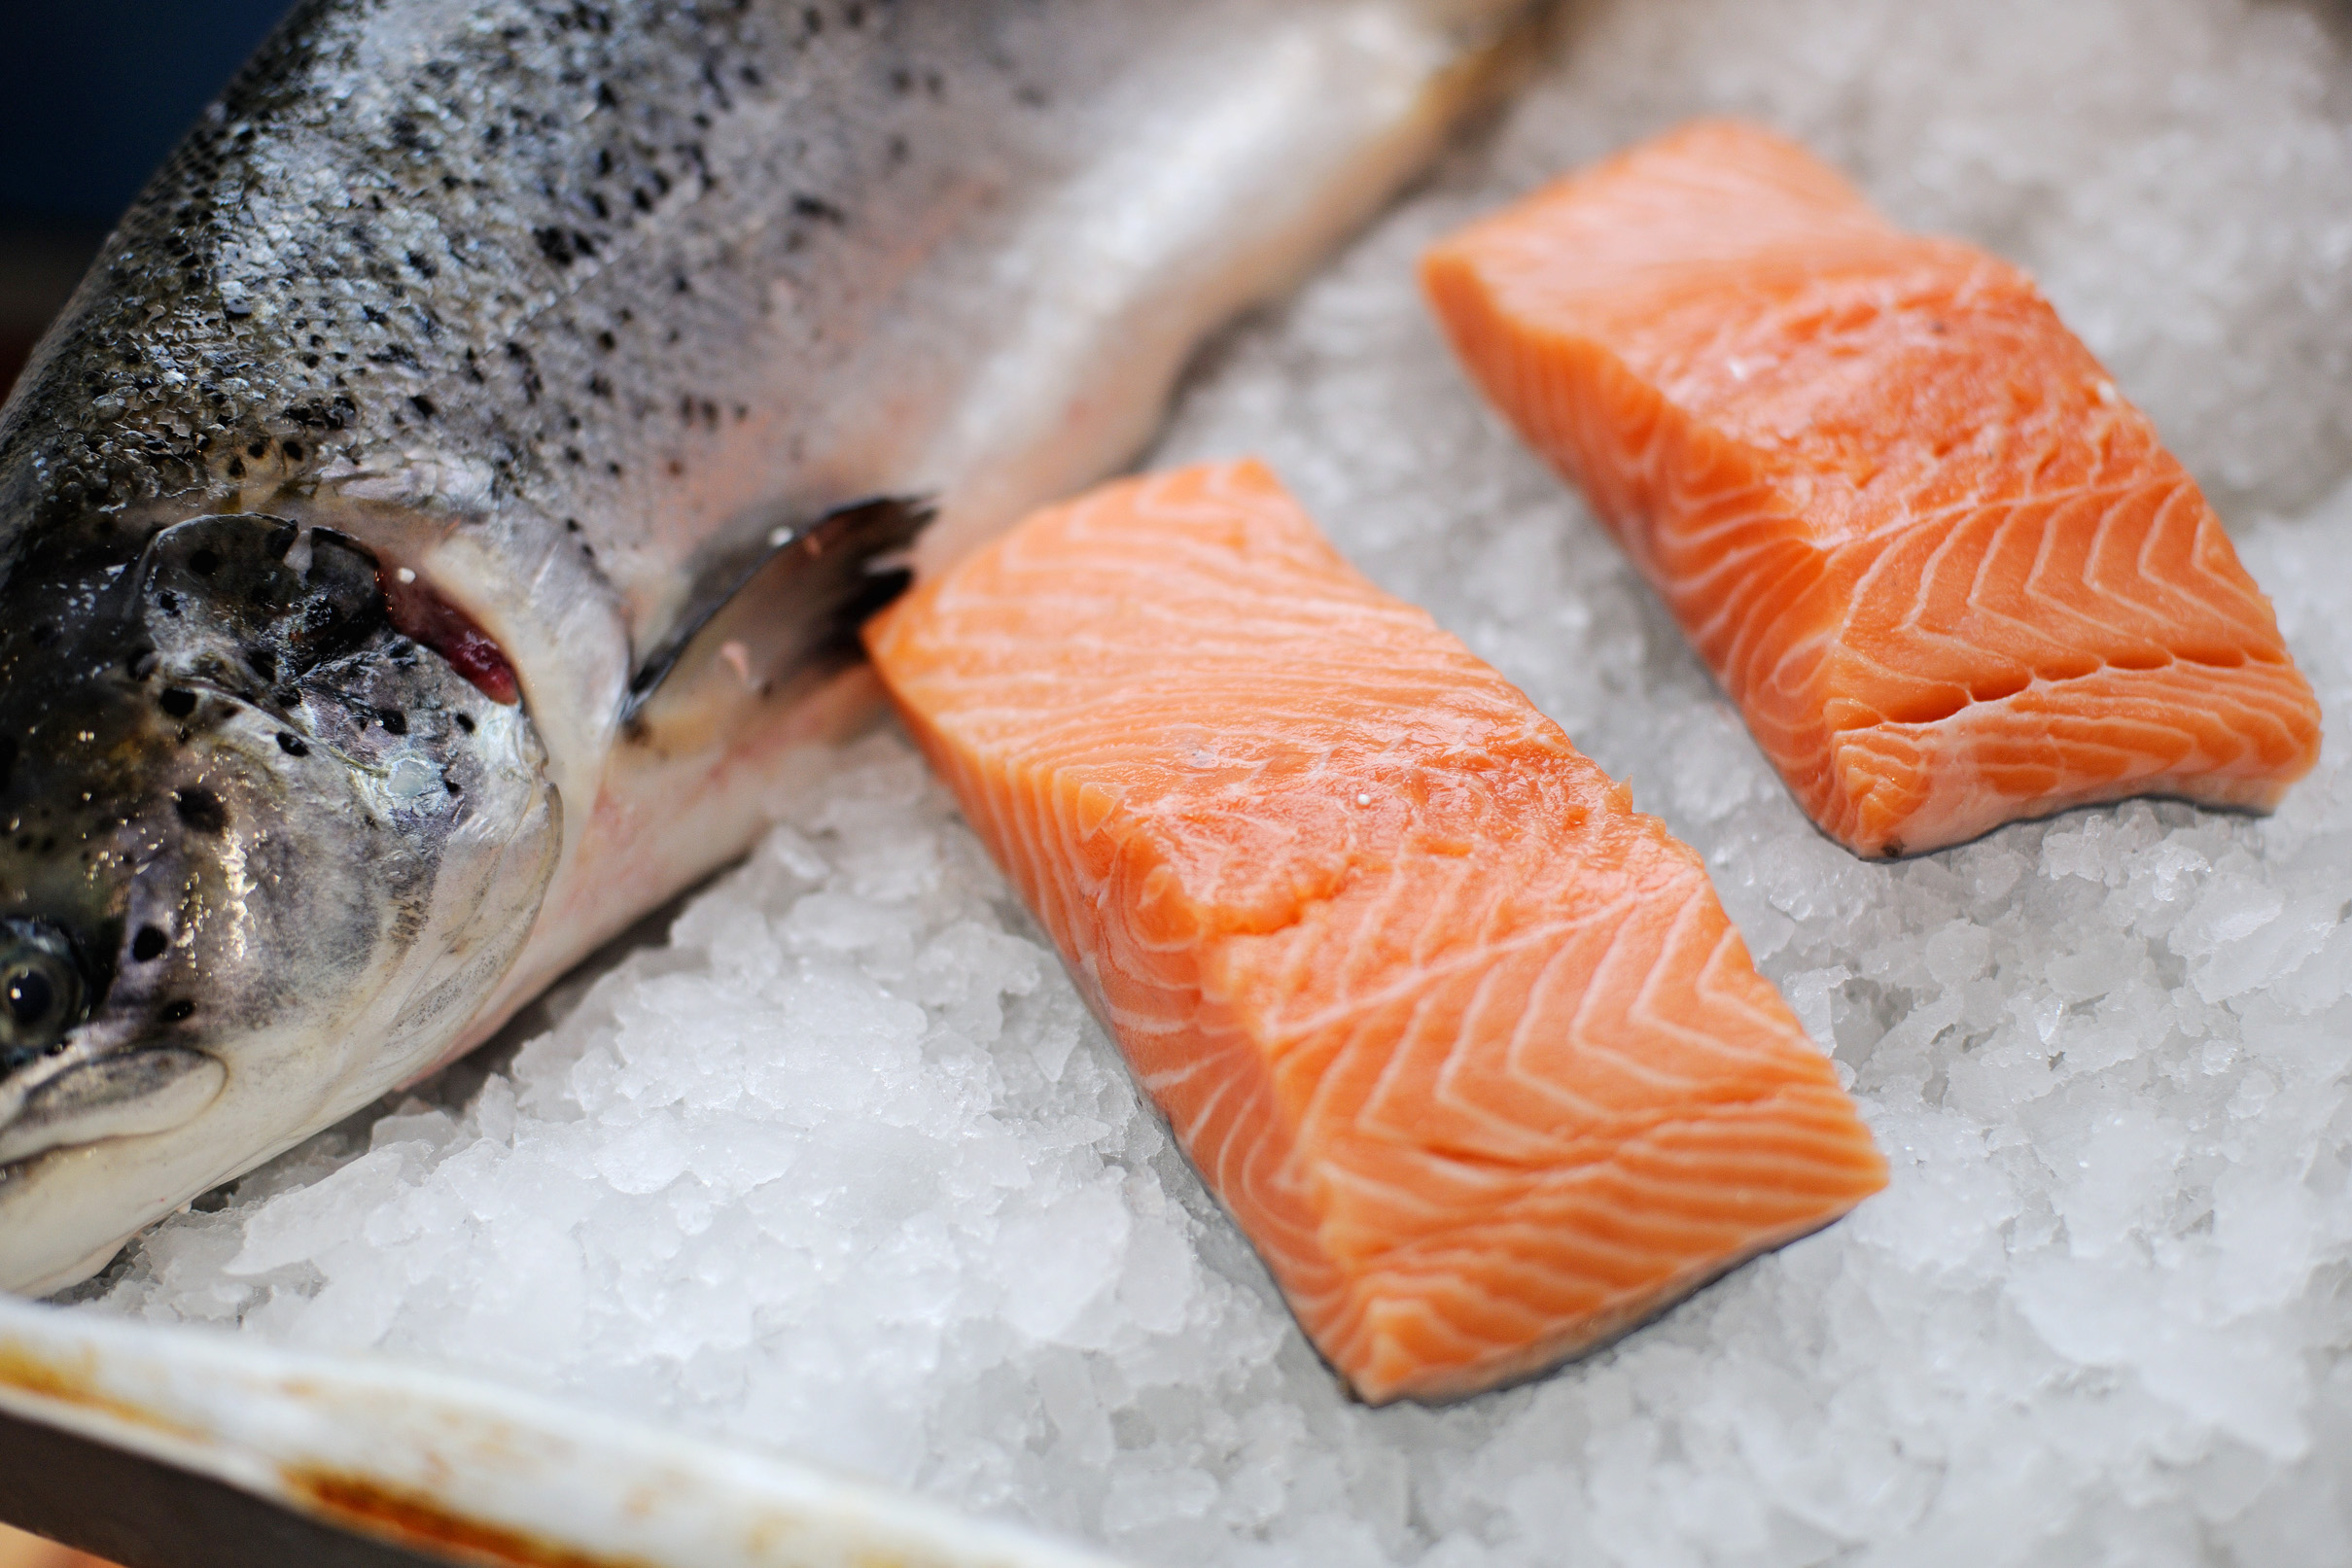 Great source of Omega-3 | 7 Health Benefits of Salmon | Her Beauty